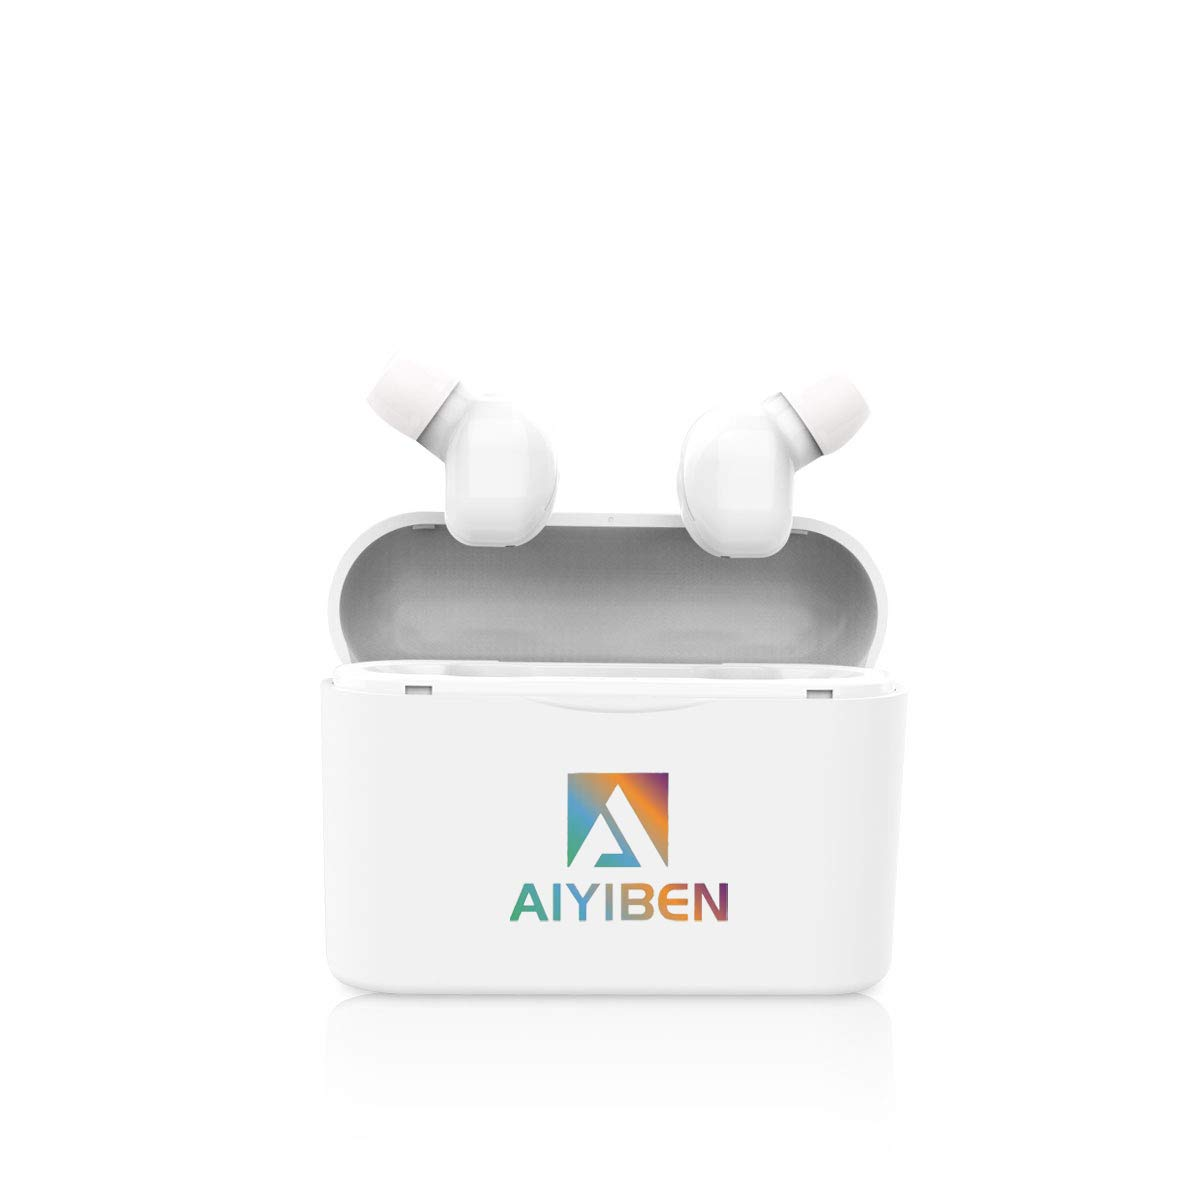 AIYIBEN Bluetooth Wireless Earbuds with Wireless Charging Case Waterproof Noise-Canceling Headphones in-Ear Built-in Mic Headset White